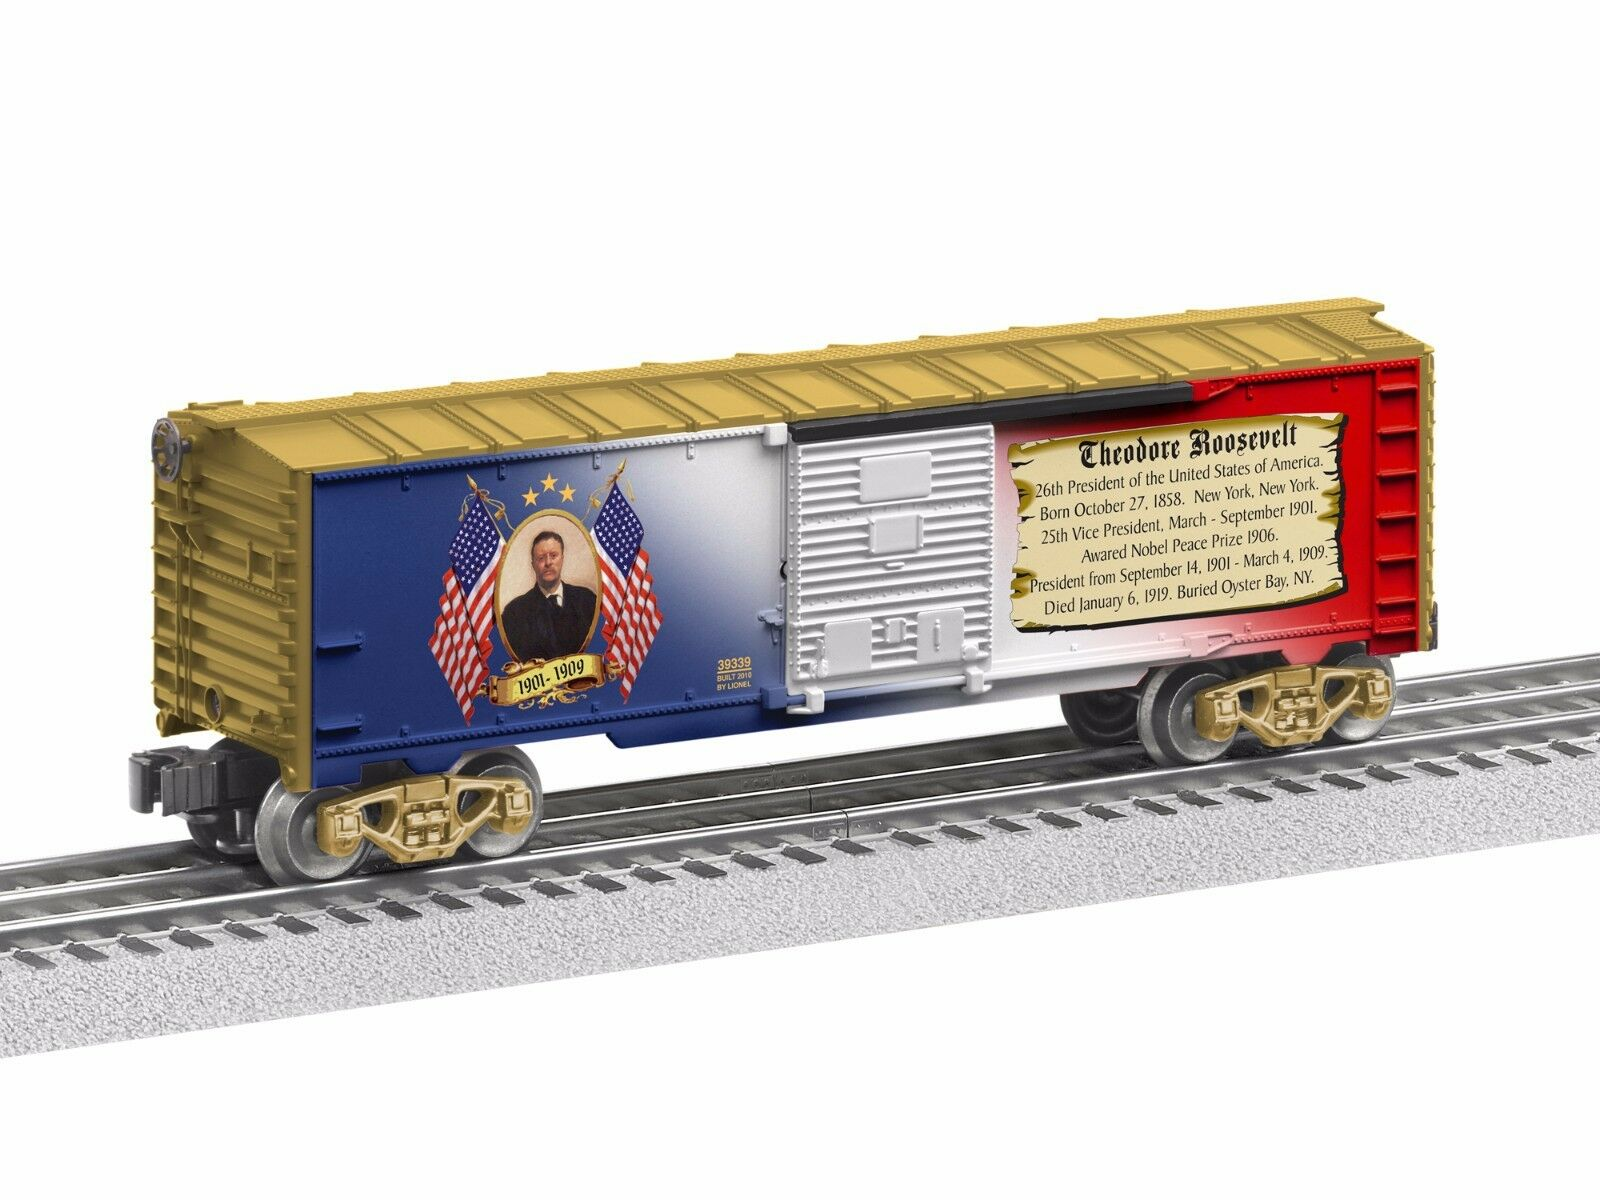 2012 6-39339 Theodore Roosevelt Boxcar free shipping made in the usa new in the